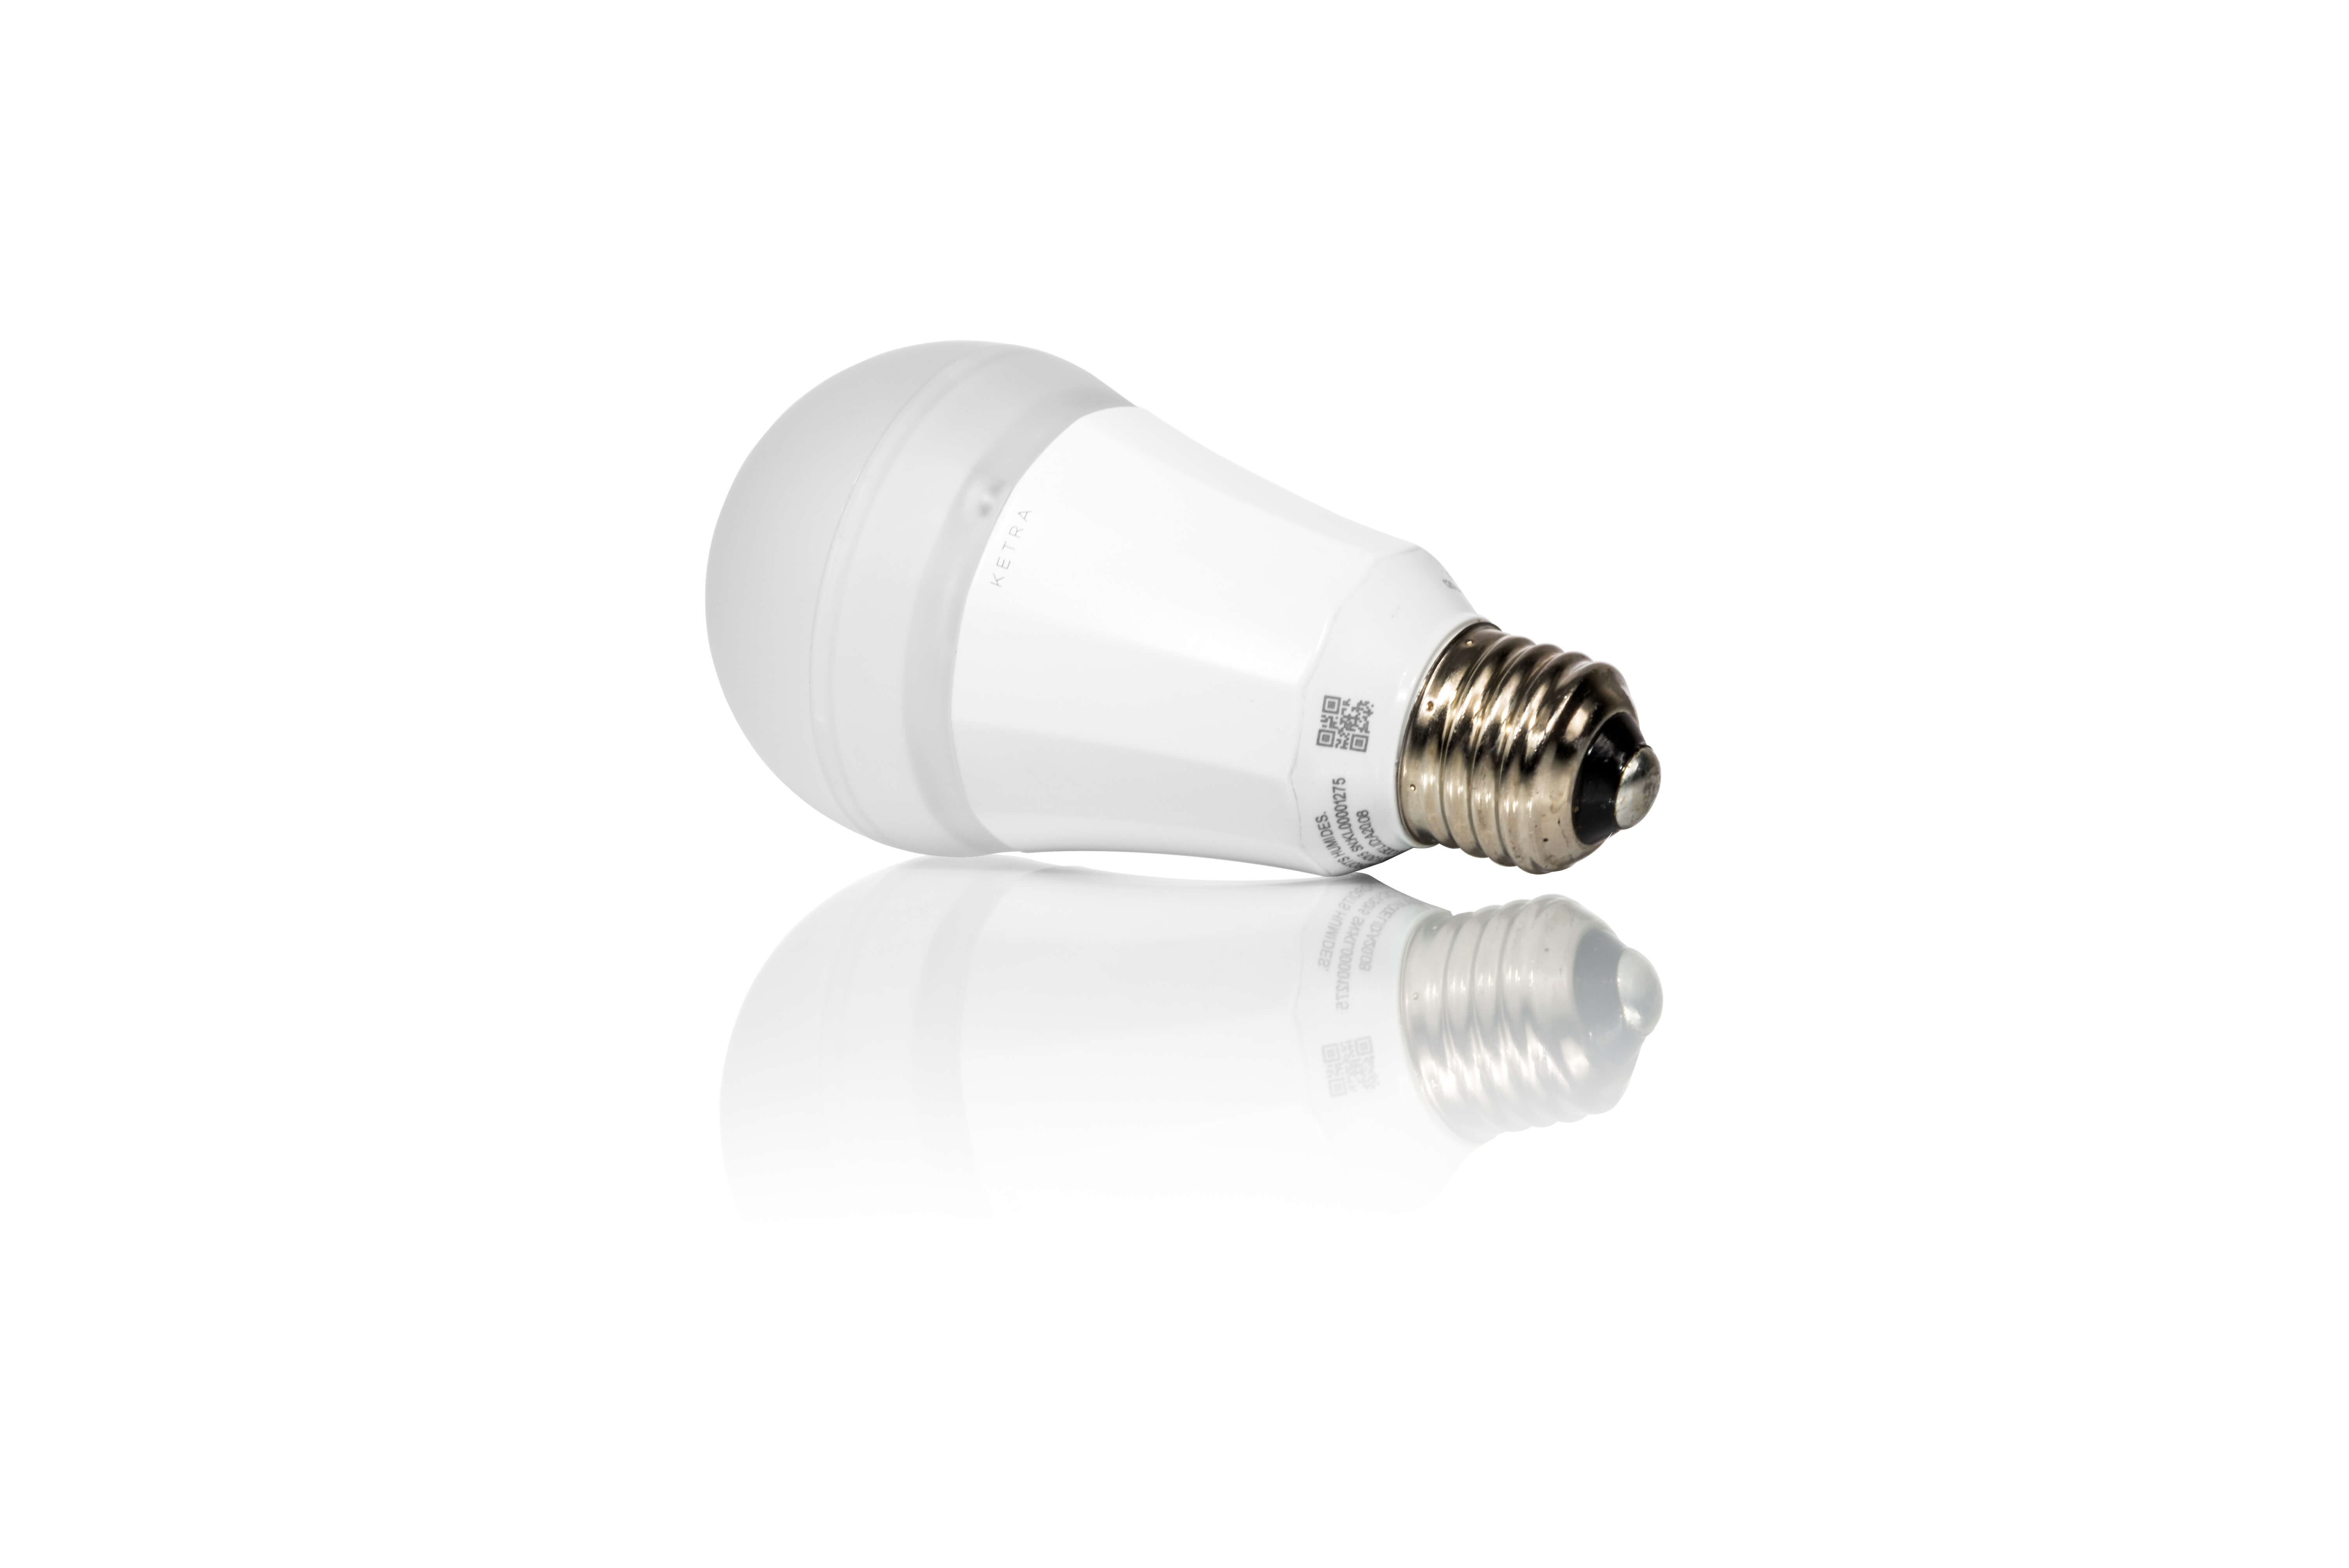 38 A20 Lamps